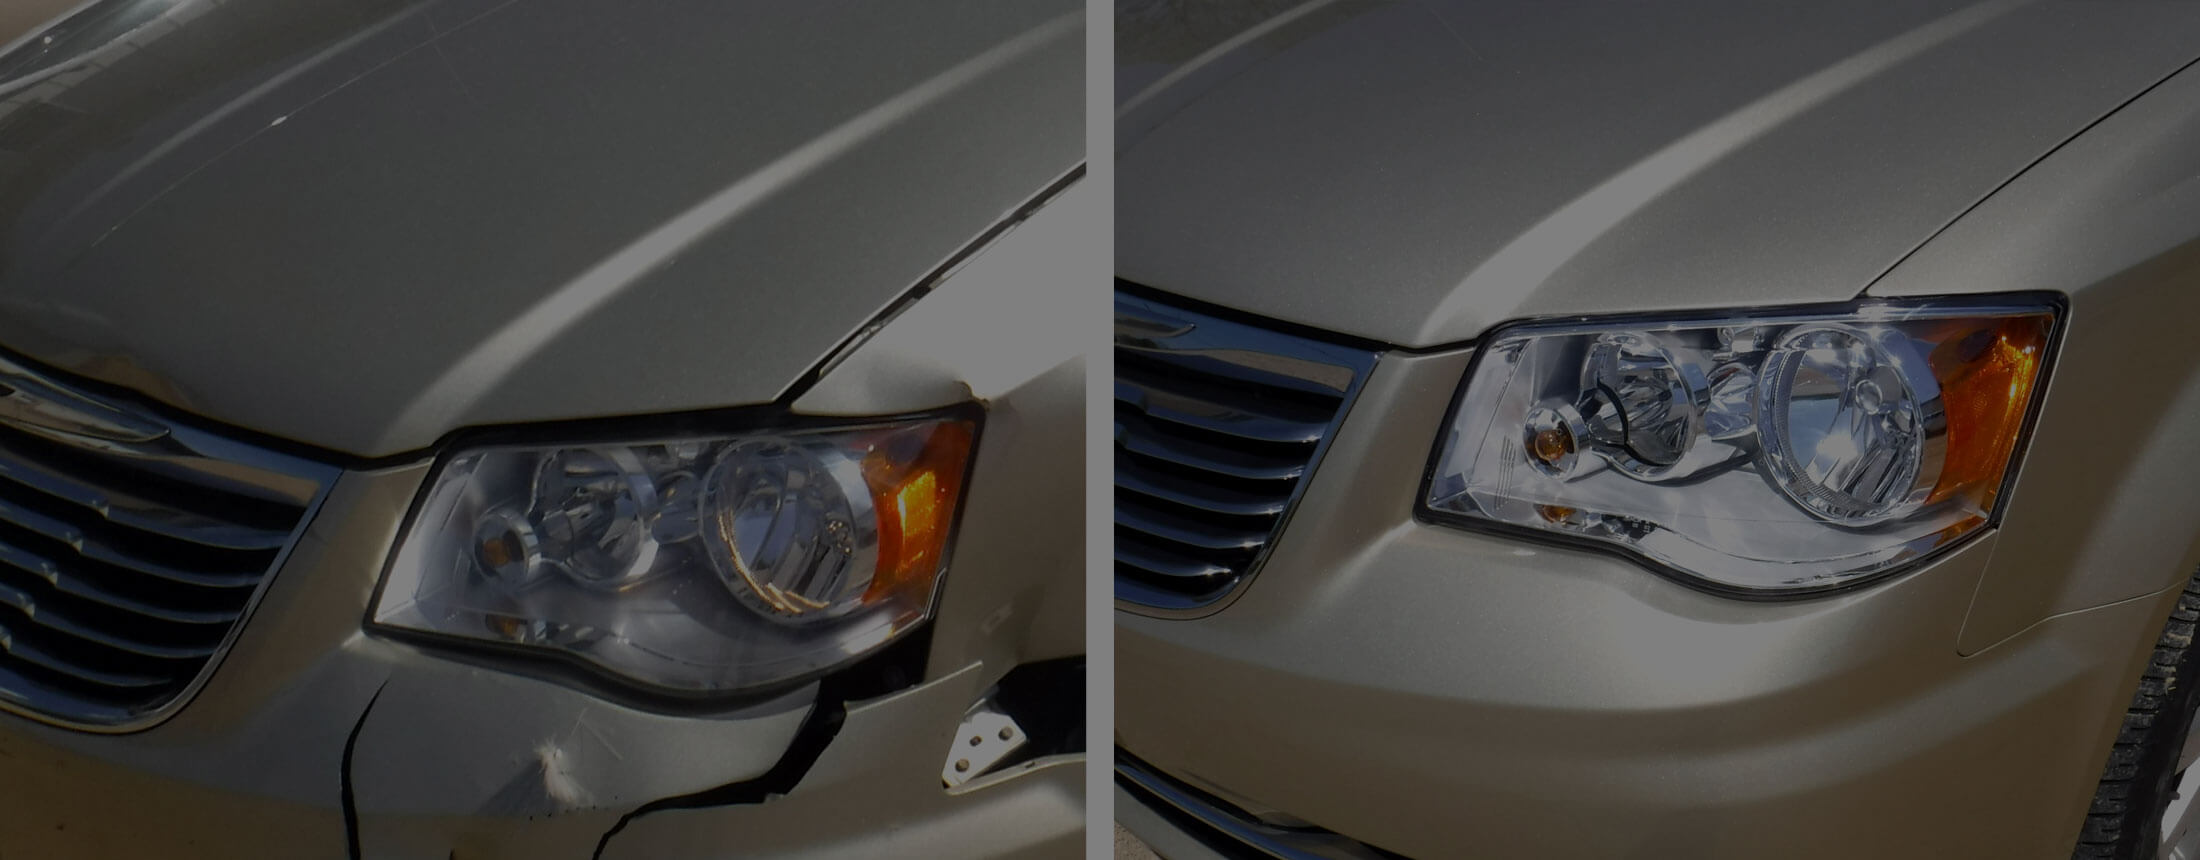 Before and after photos of a van with a damaged front bumper and headlight repaired by Wayne's Auto Body